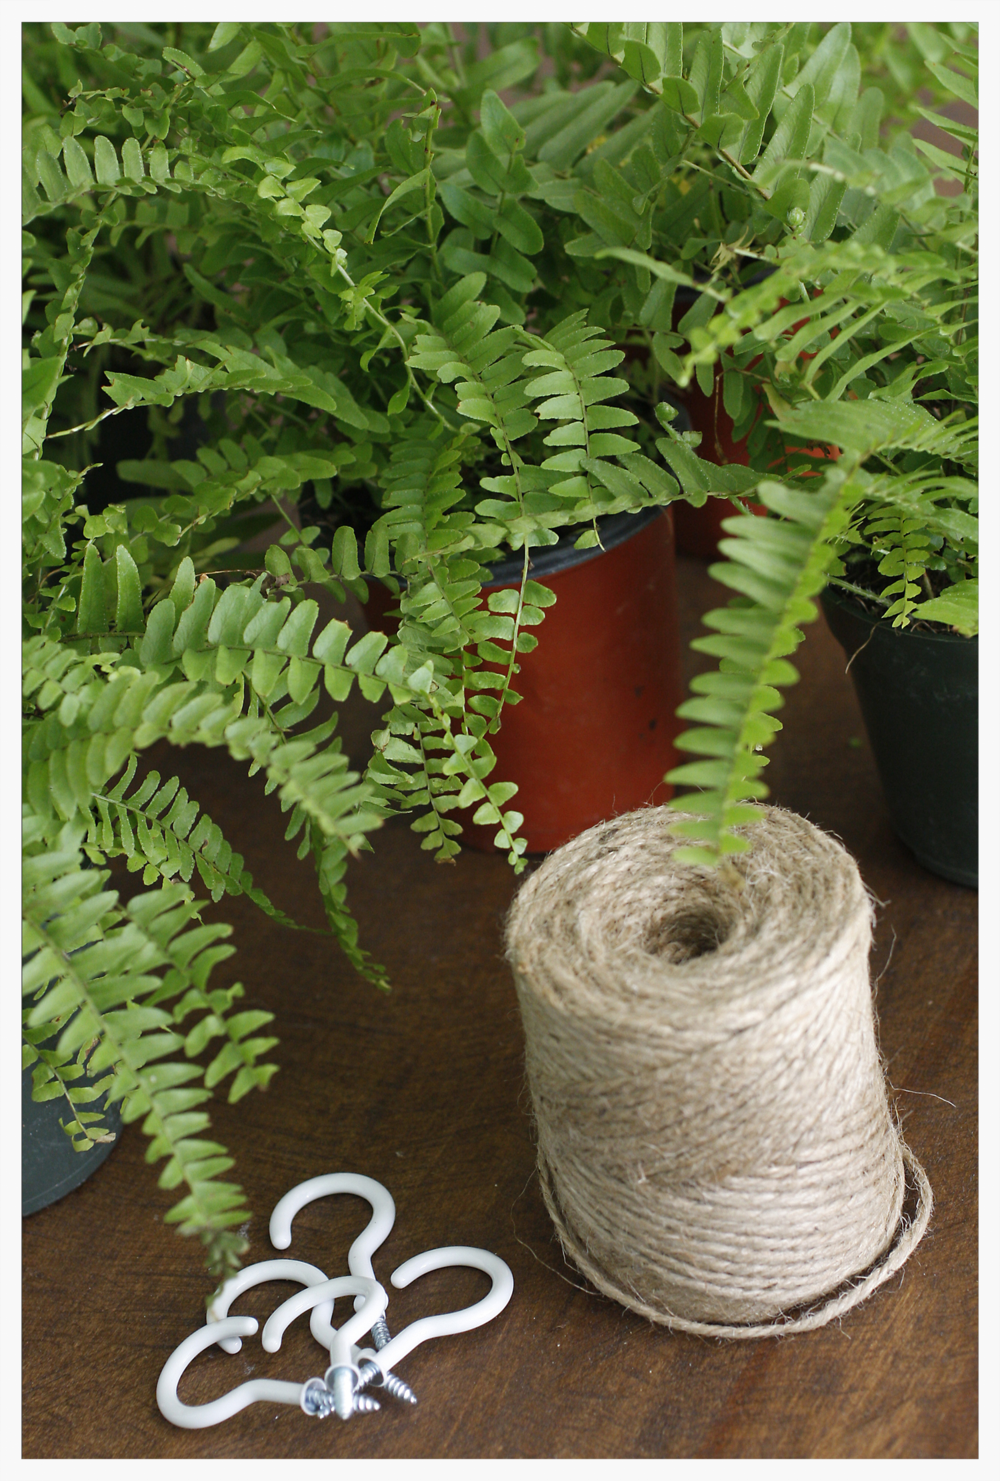 I used twine to make plant hanger by wrapping it around the bottom of the plastic pot. You could also poke two holes at the top with scissors and  tie each piece of twine together at the top to make the loop for the hooks.